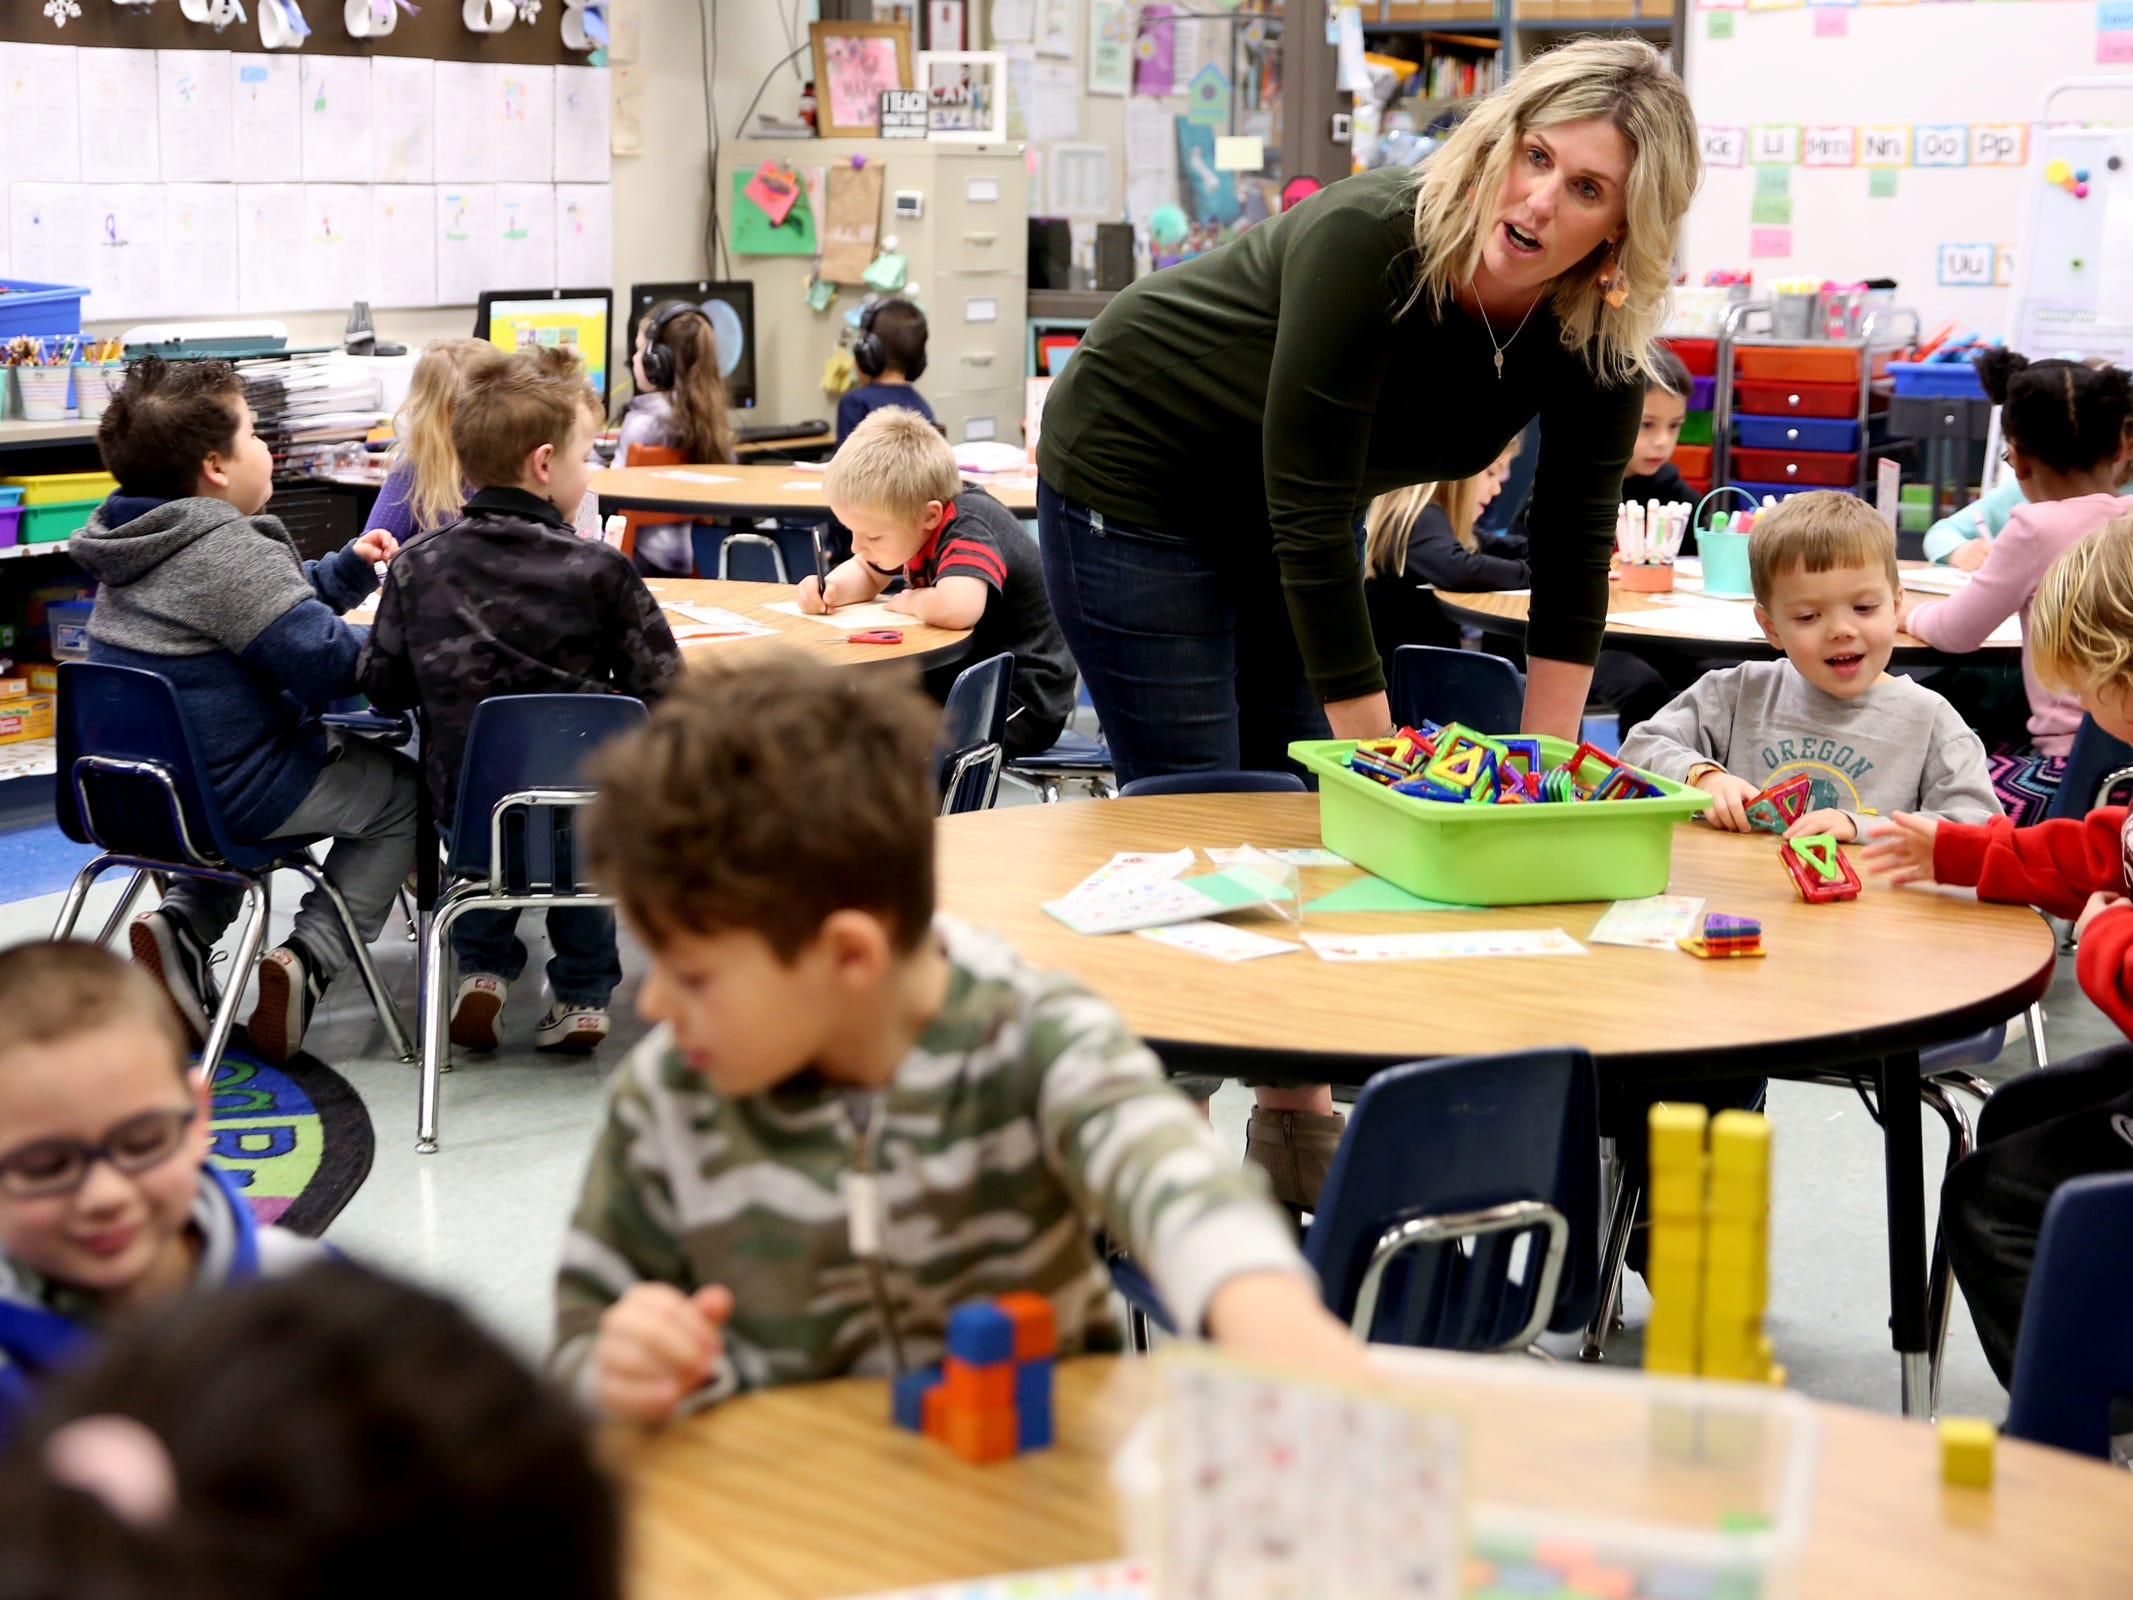 Teacher Jennifer Bethers keeps an eye on her kindergarten classroom with 34 students with one instructional assistant at Pringle Elementary School in Salem on Monday, Feb. 4, 2019.